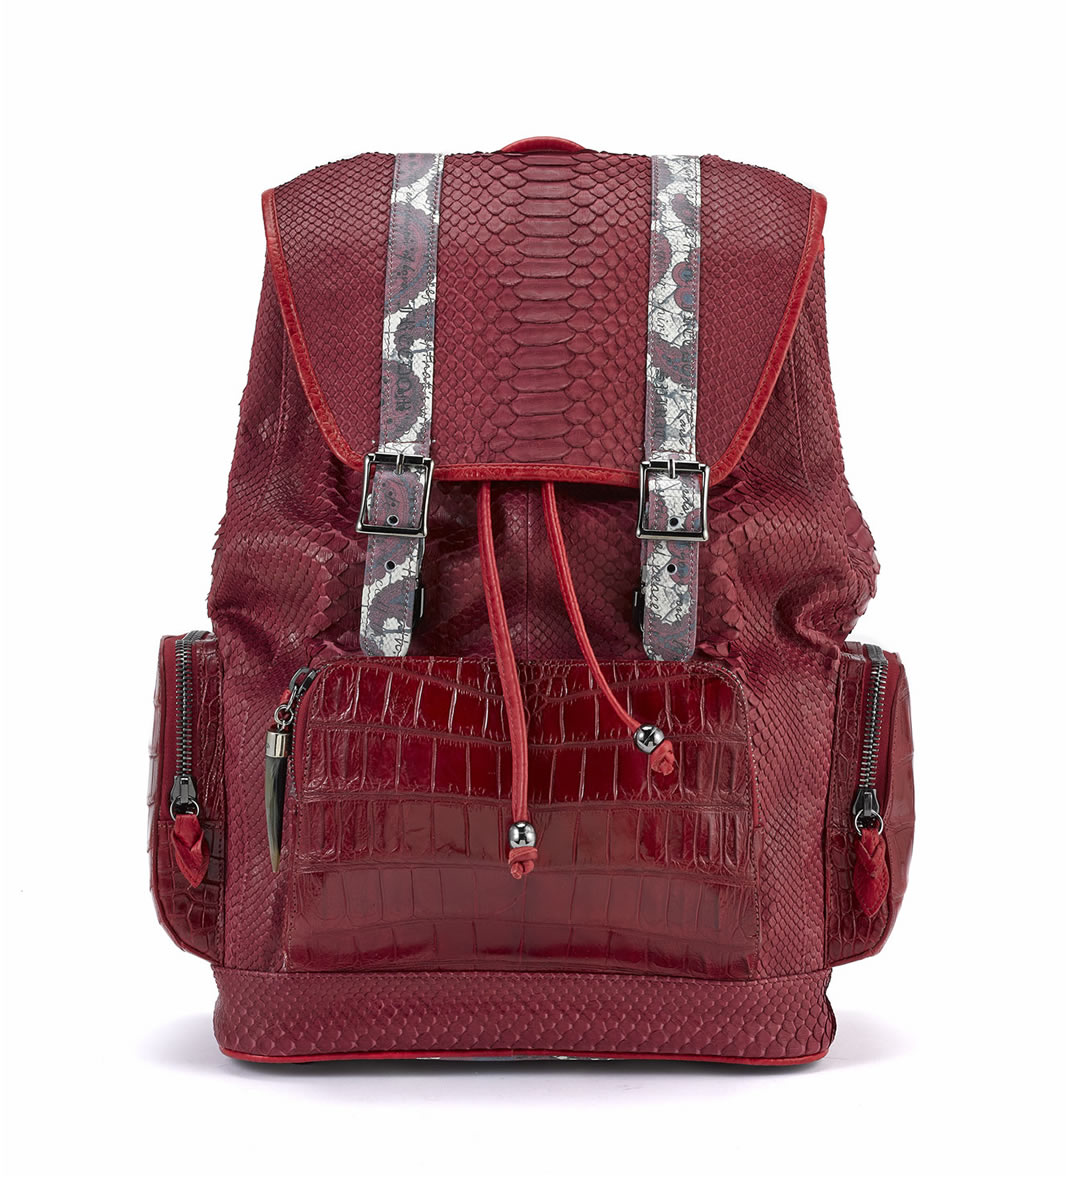 Sports BACKPACK-brown-red-python